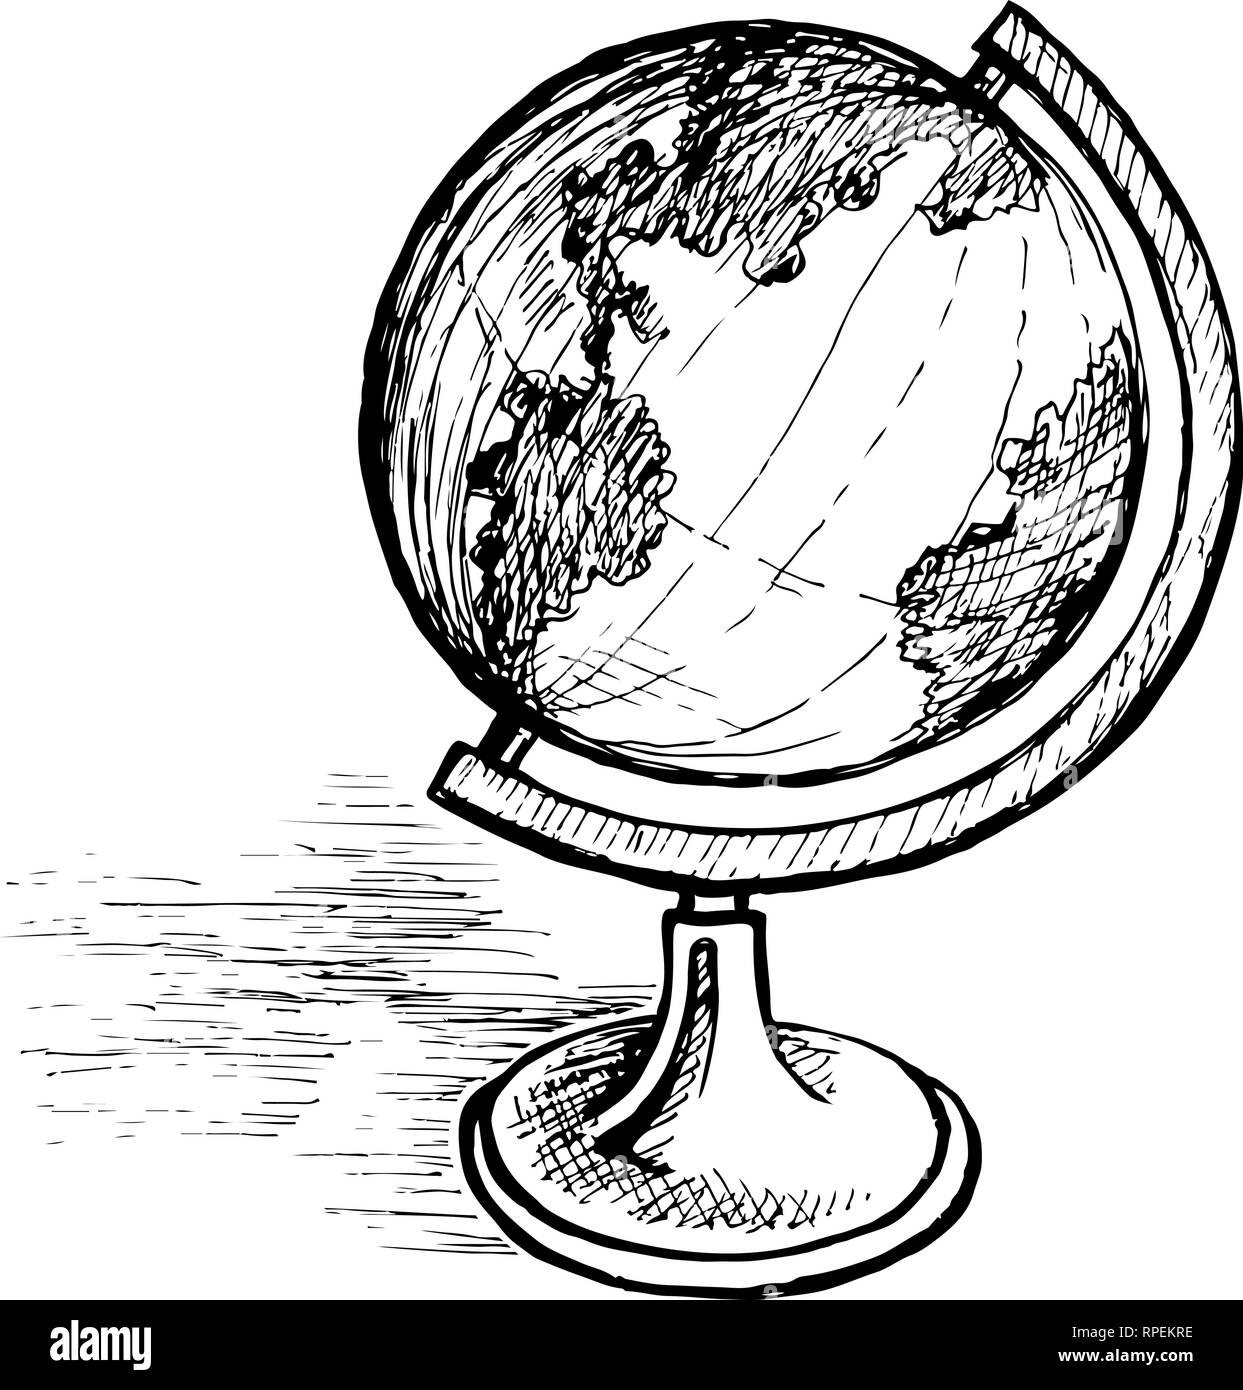 Globe sur un sketch stand Photo Stock